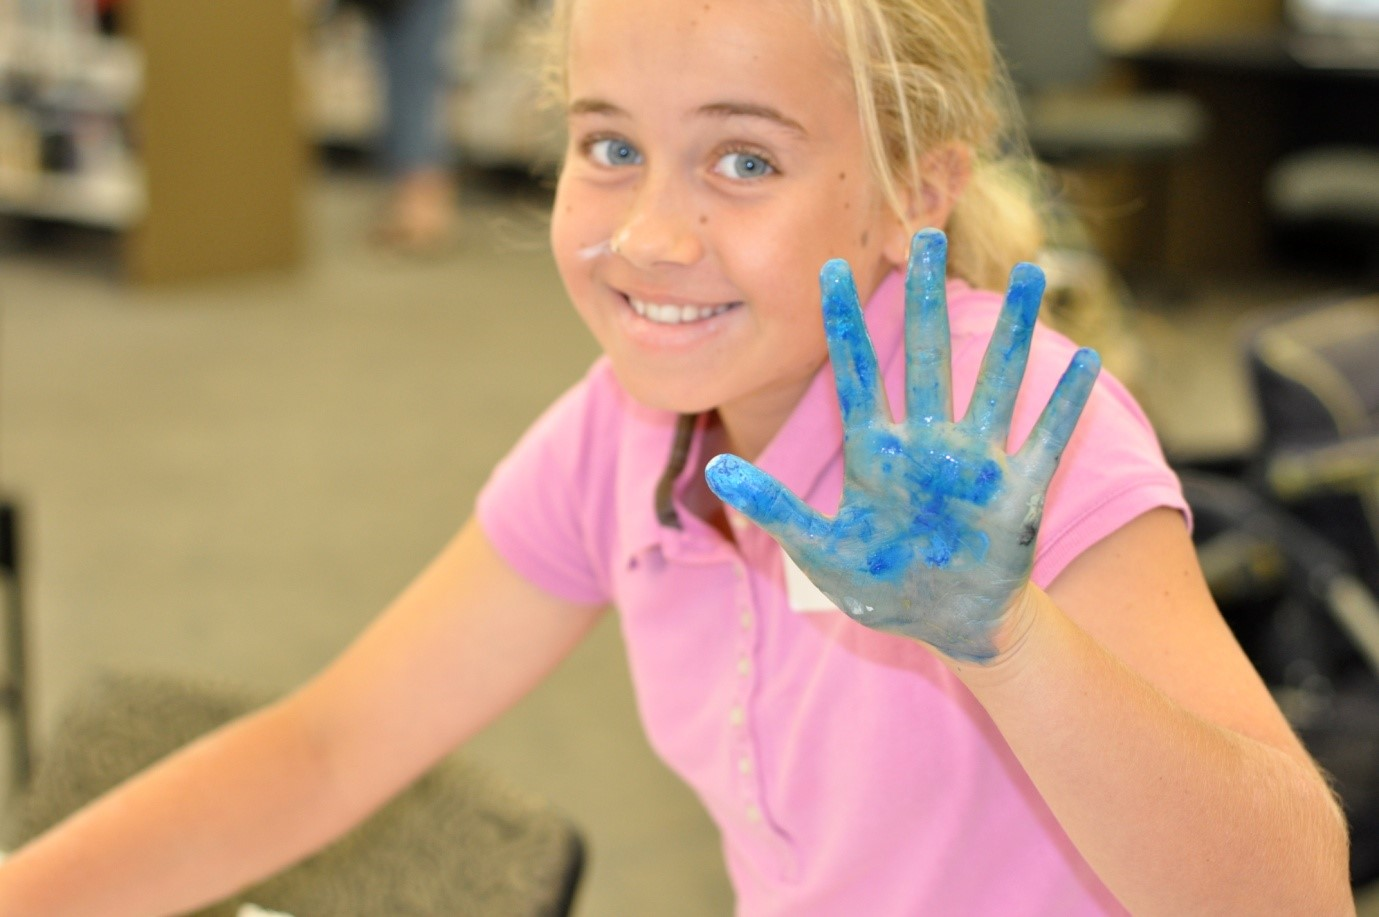 photo of smiling girl holding up a hand covered in blue paint